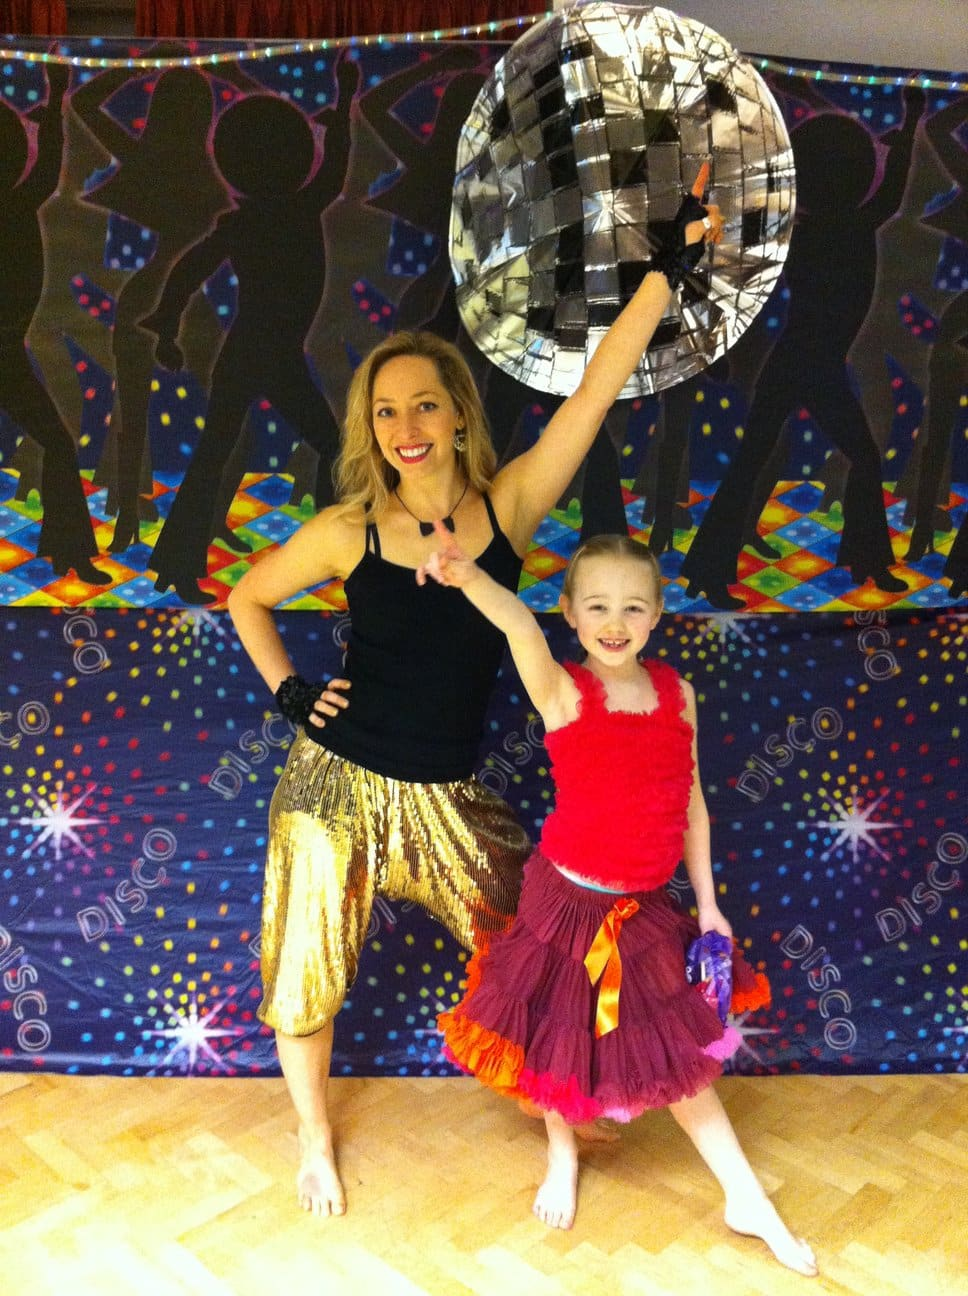 Olivia and birthday girl posing with a big disco ball